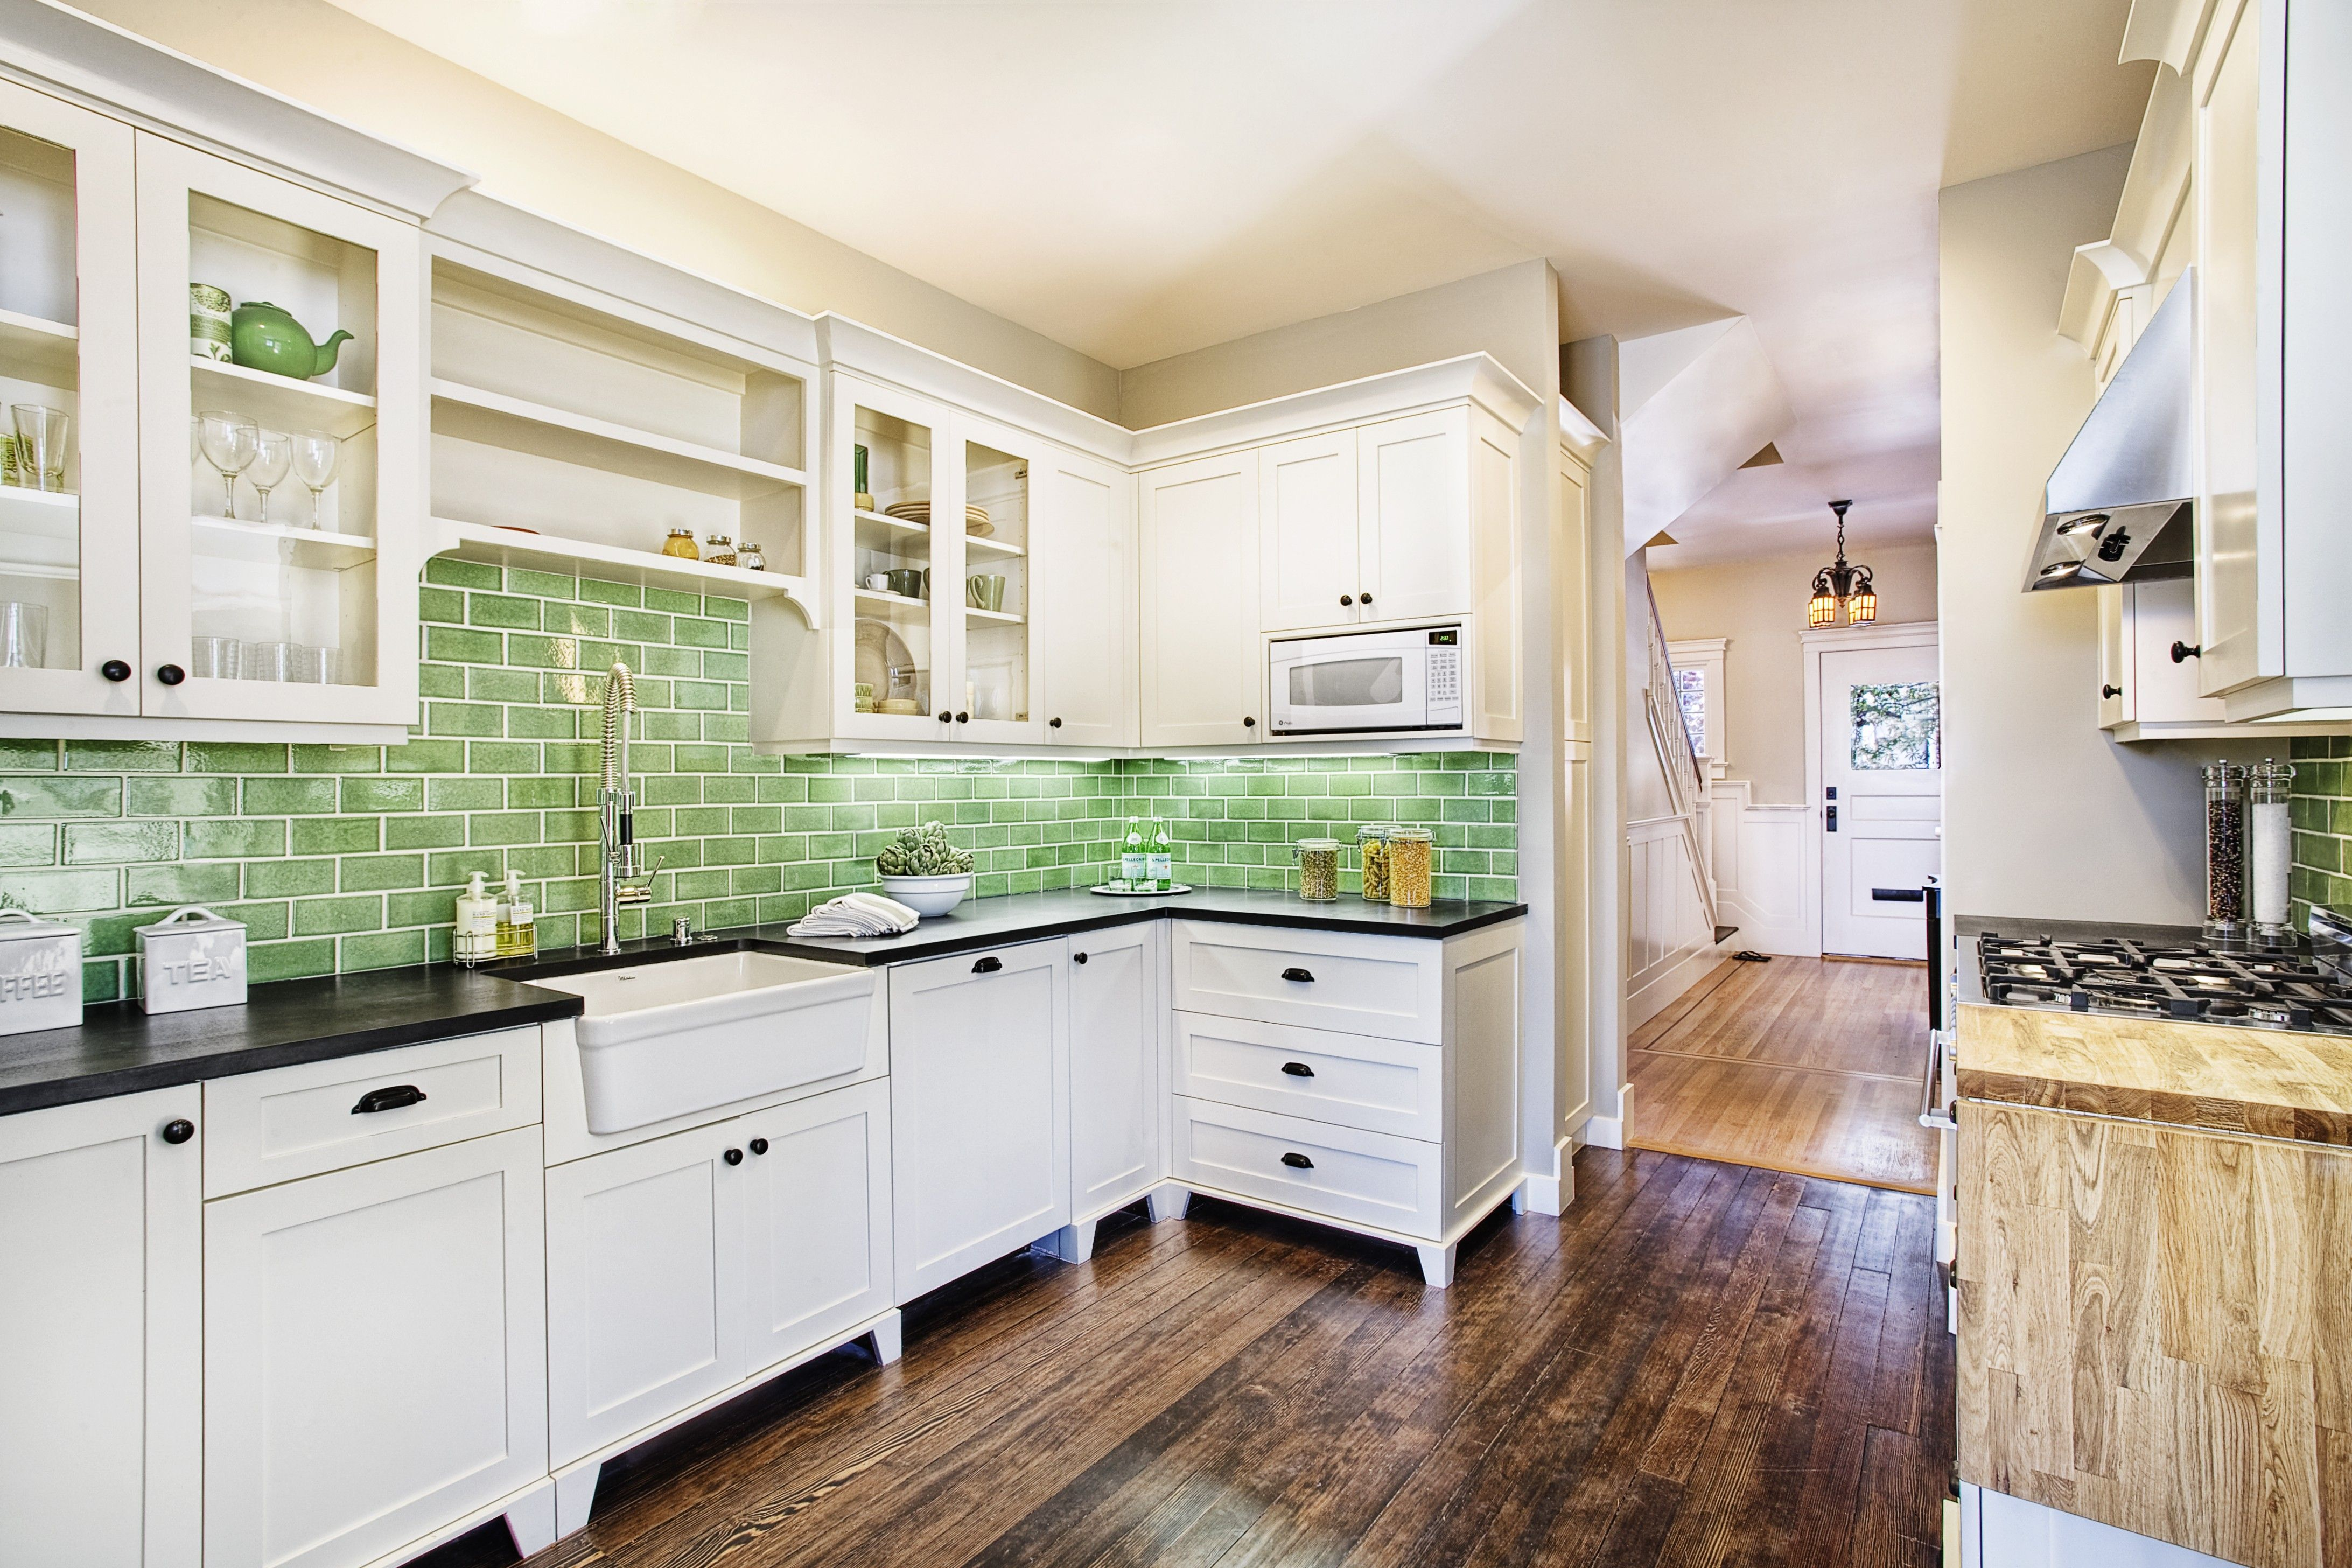 17 Colorful Kitchens That Look So Inviting | Kitchens, Kitchen ...